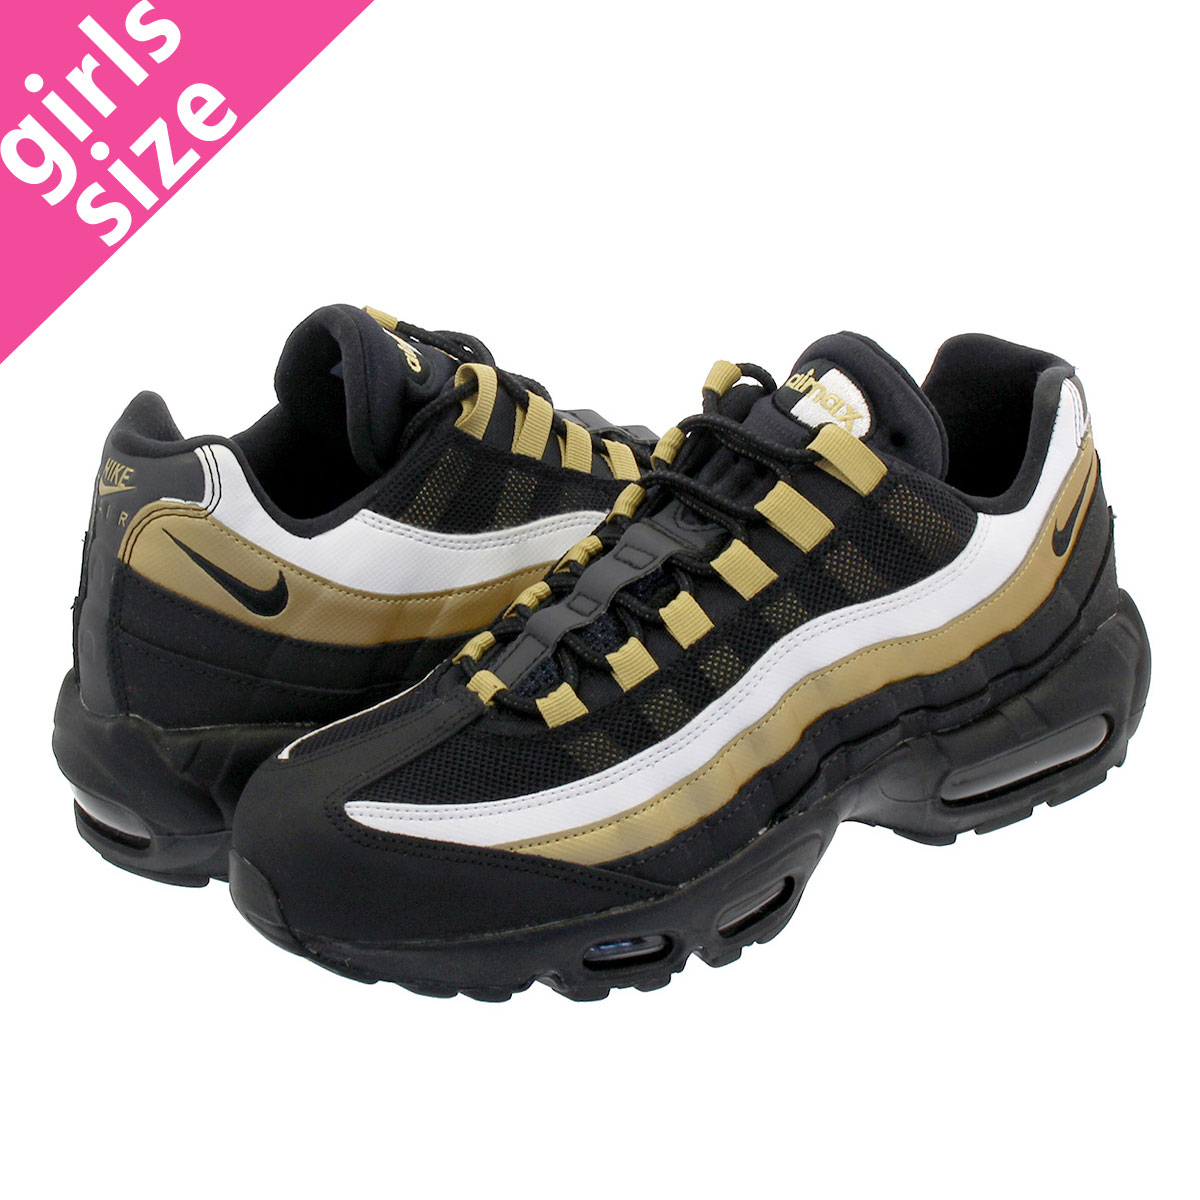 Nike Air Max 95 Black Gold Where To Buy AT2865 002 | The